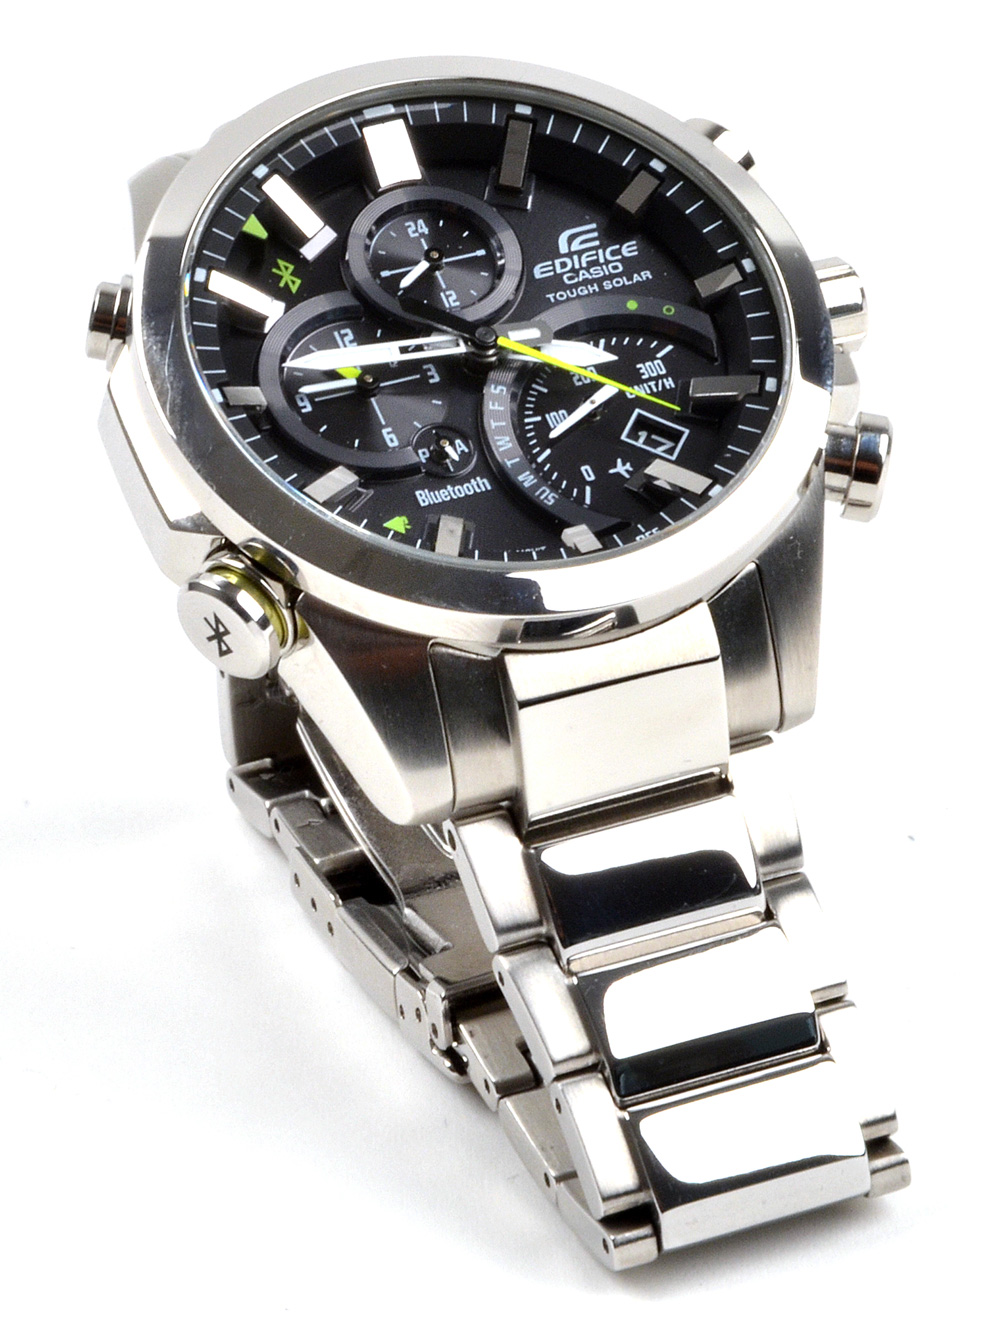 montre g shock homme prix collectible crystal figurines and gifts. Black Bedroom Furniture Sets. Home Design Ideas